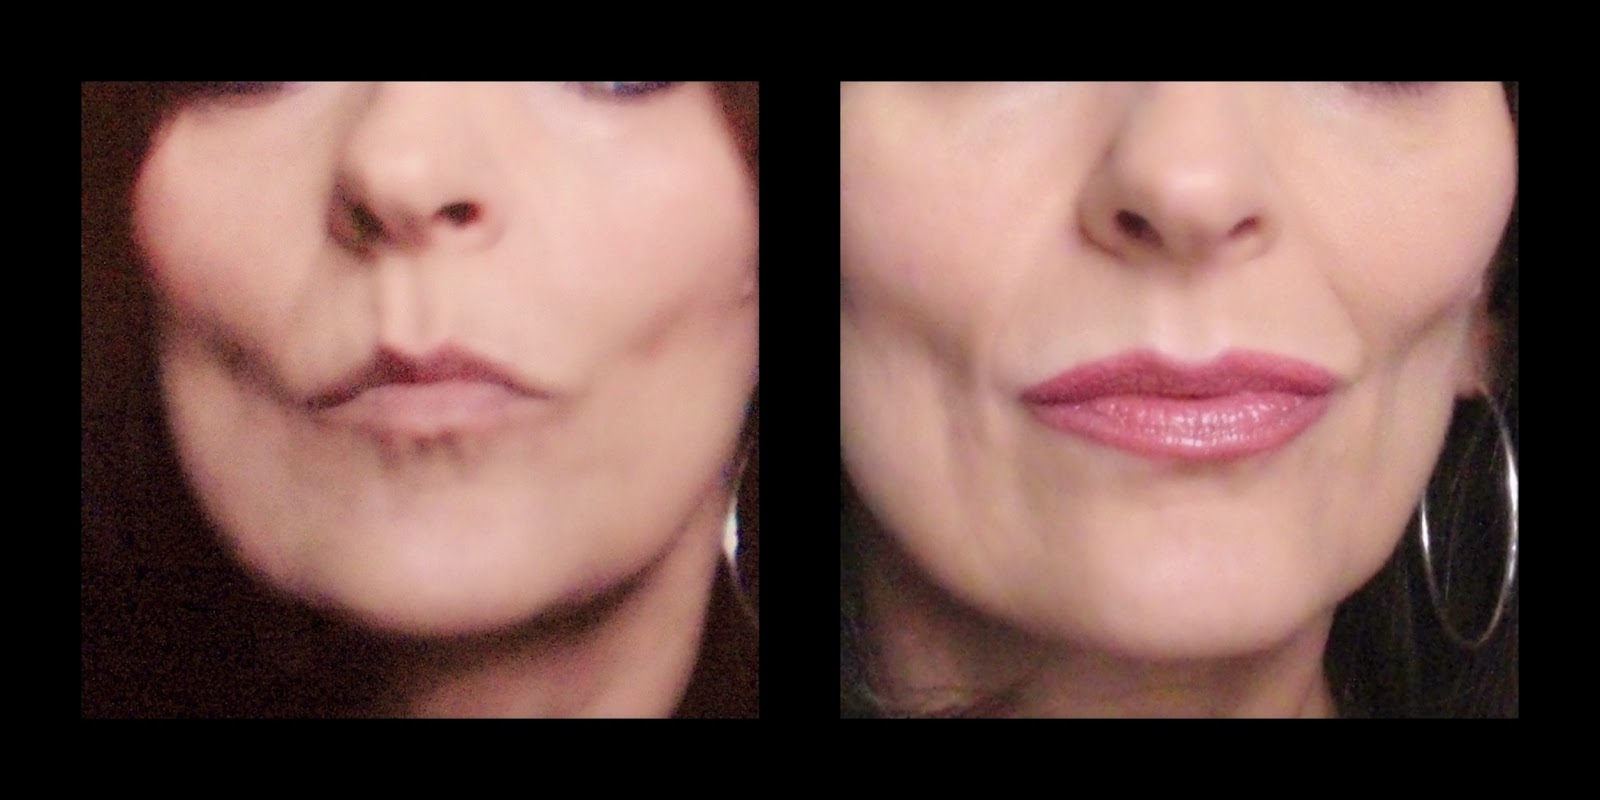 How to get Fuller, Younger Looking Lips in 8 Steps